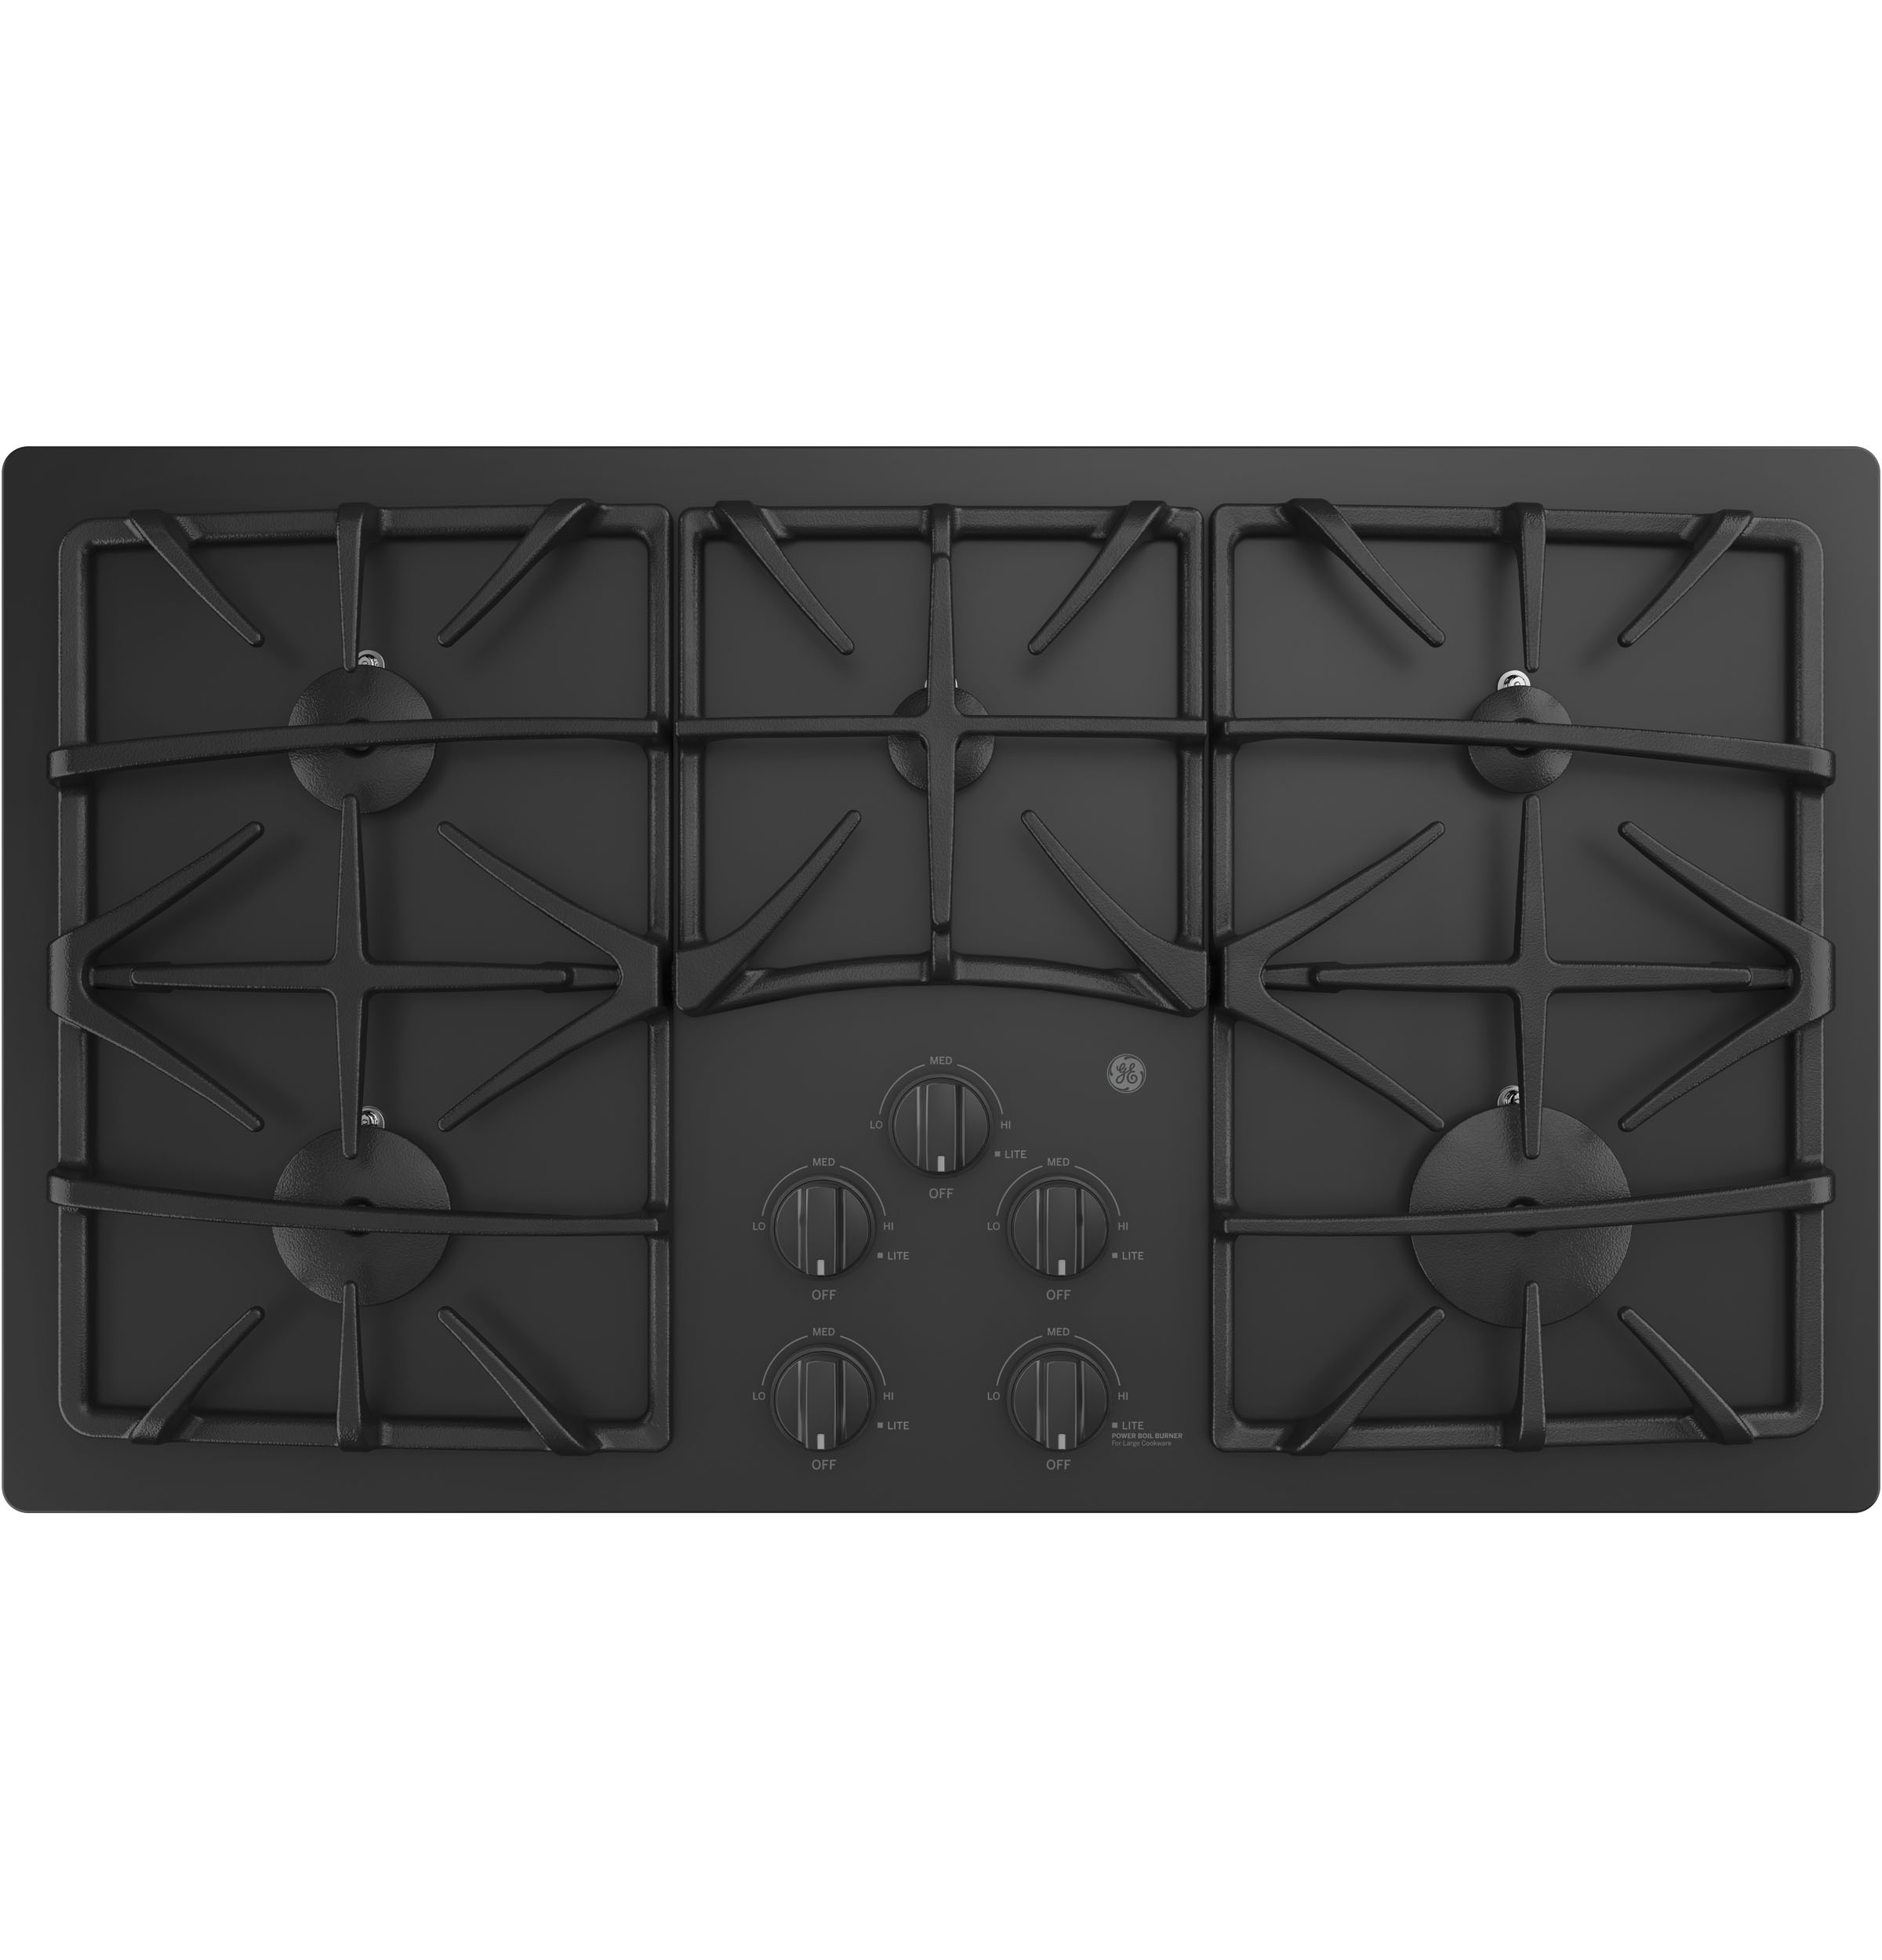 "GE GE® 36"" Built-In Gas on Glass Cooktop with 5 Burners and Dishwasher Safe Grates"